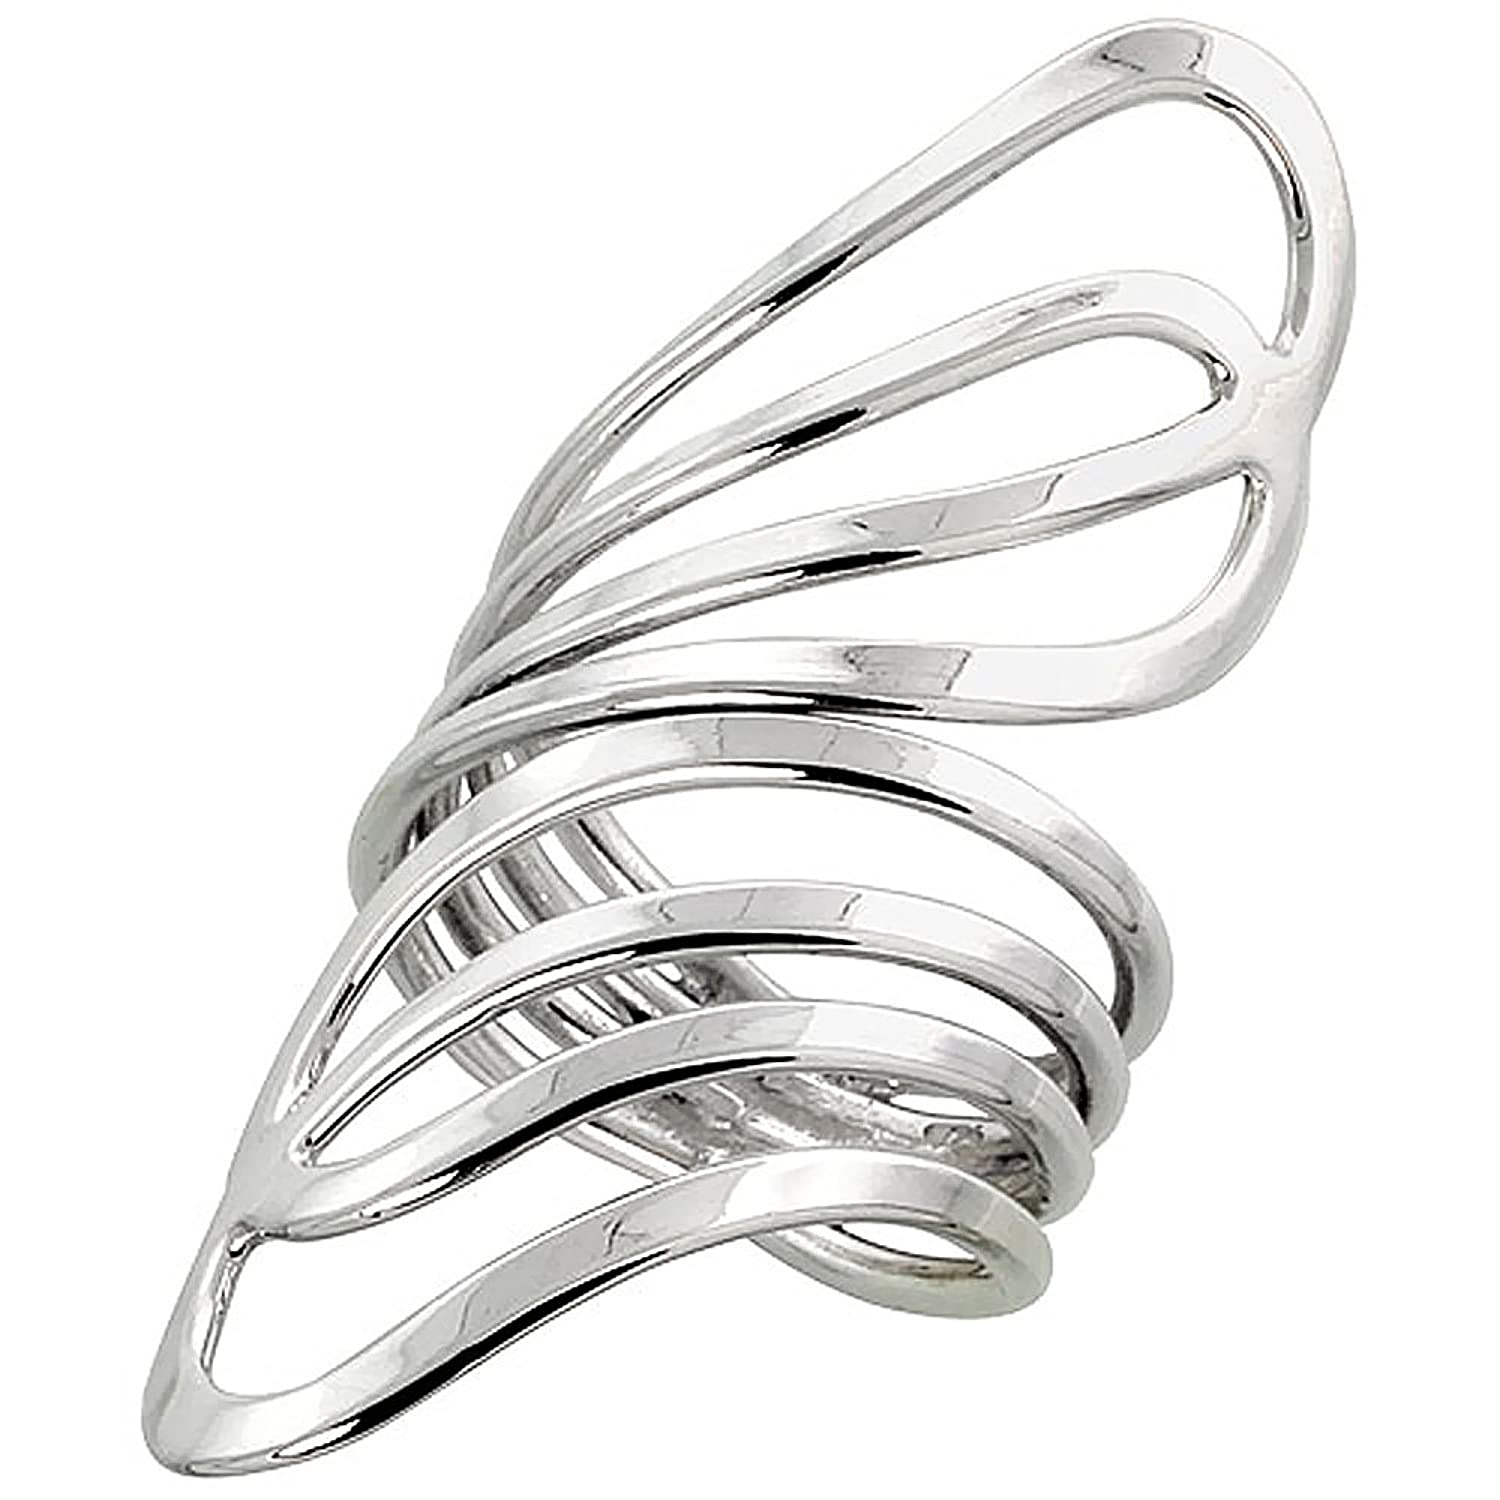 cool ring idea new men made s wrapped unique is artsy rustic wedding of super mens by or rings wire band this masculine